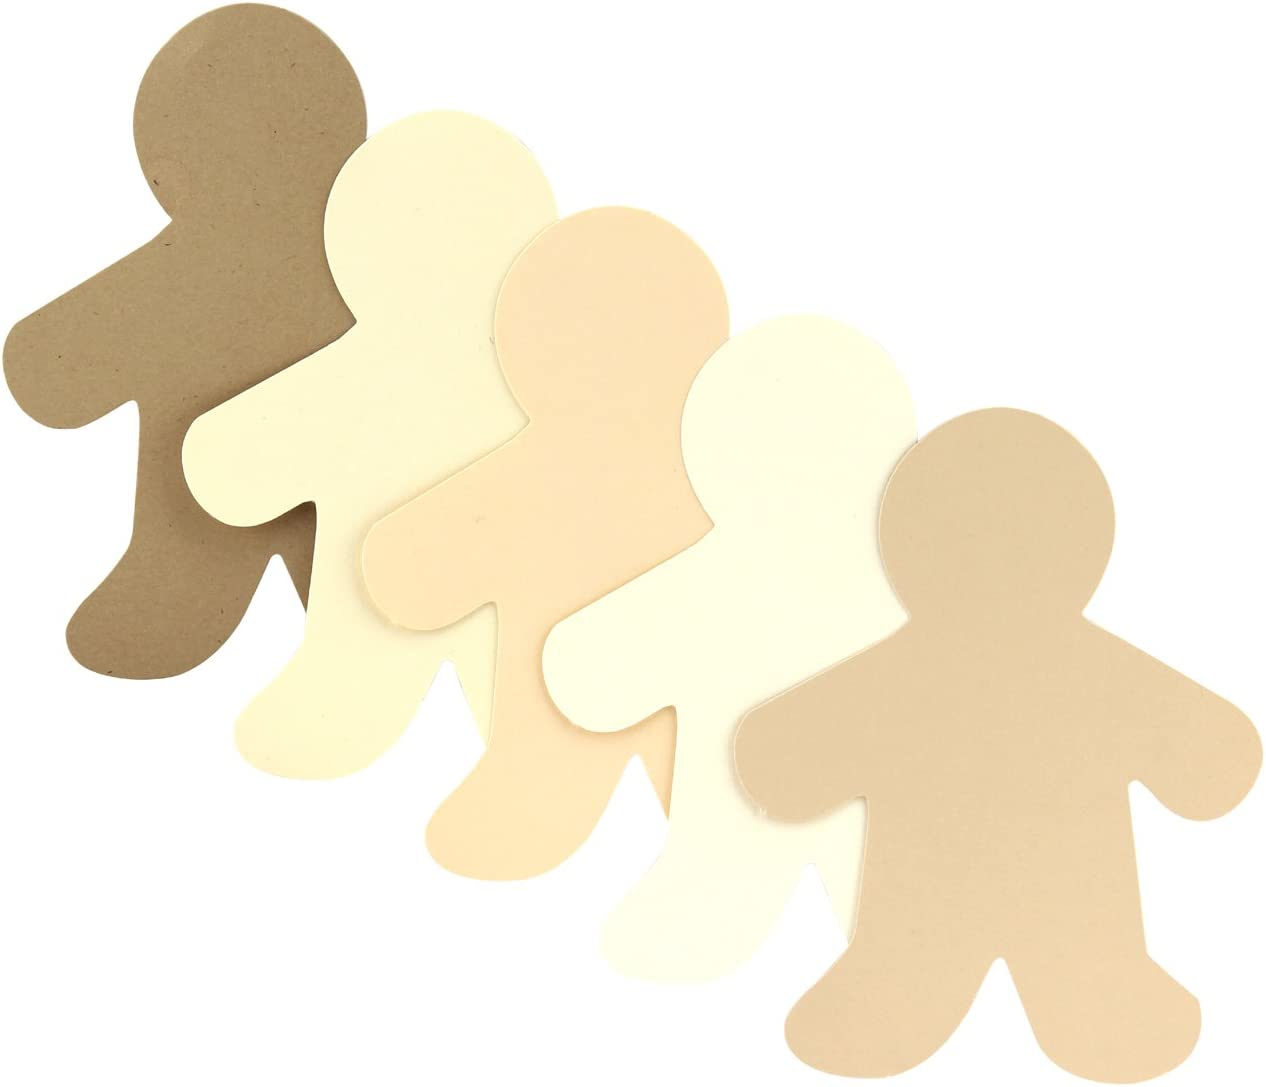 7-Inch Cardstock 7 Mommy-24 ct Assorted Hygloss Products 68207 People Paper Cut Outs Culturally Diverse Family